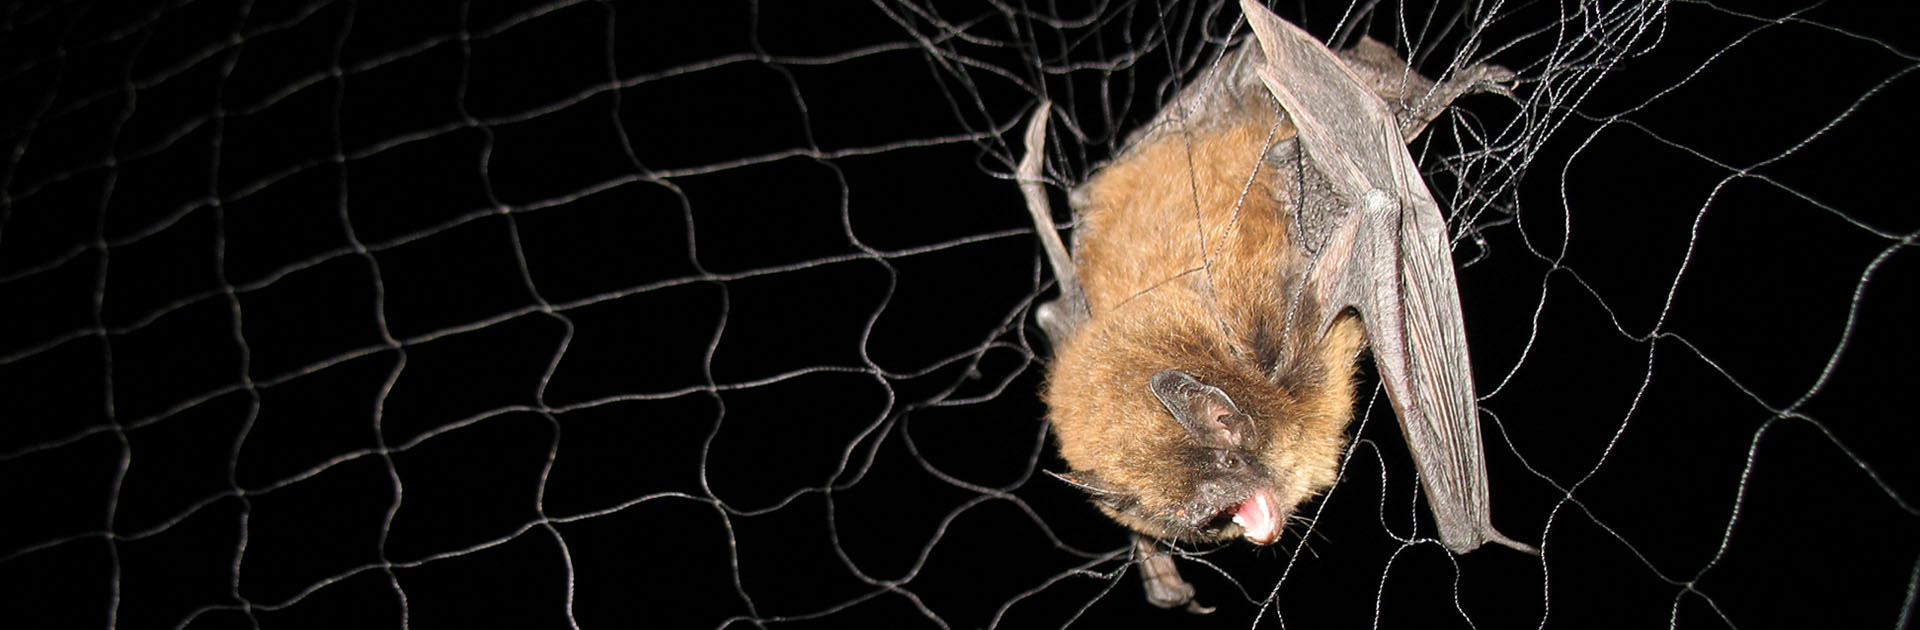 long-legged-bat-Myotis-volans-in-mist-net-Jeetekno